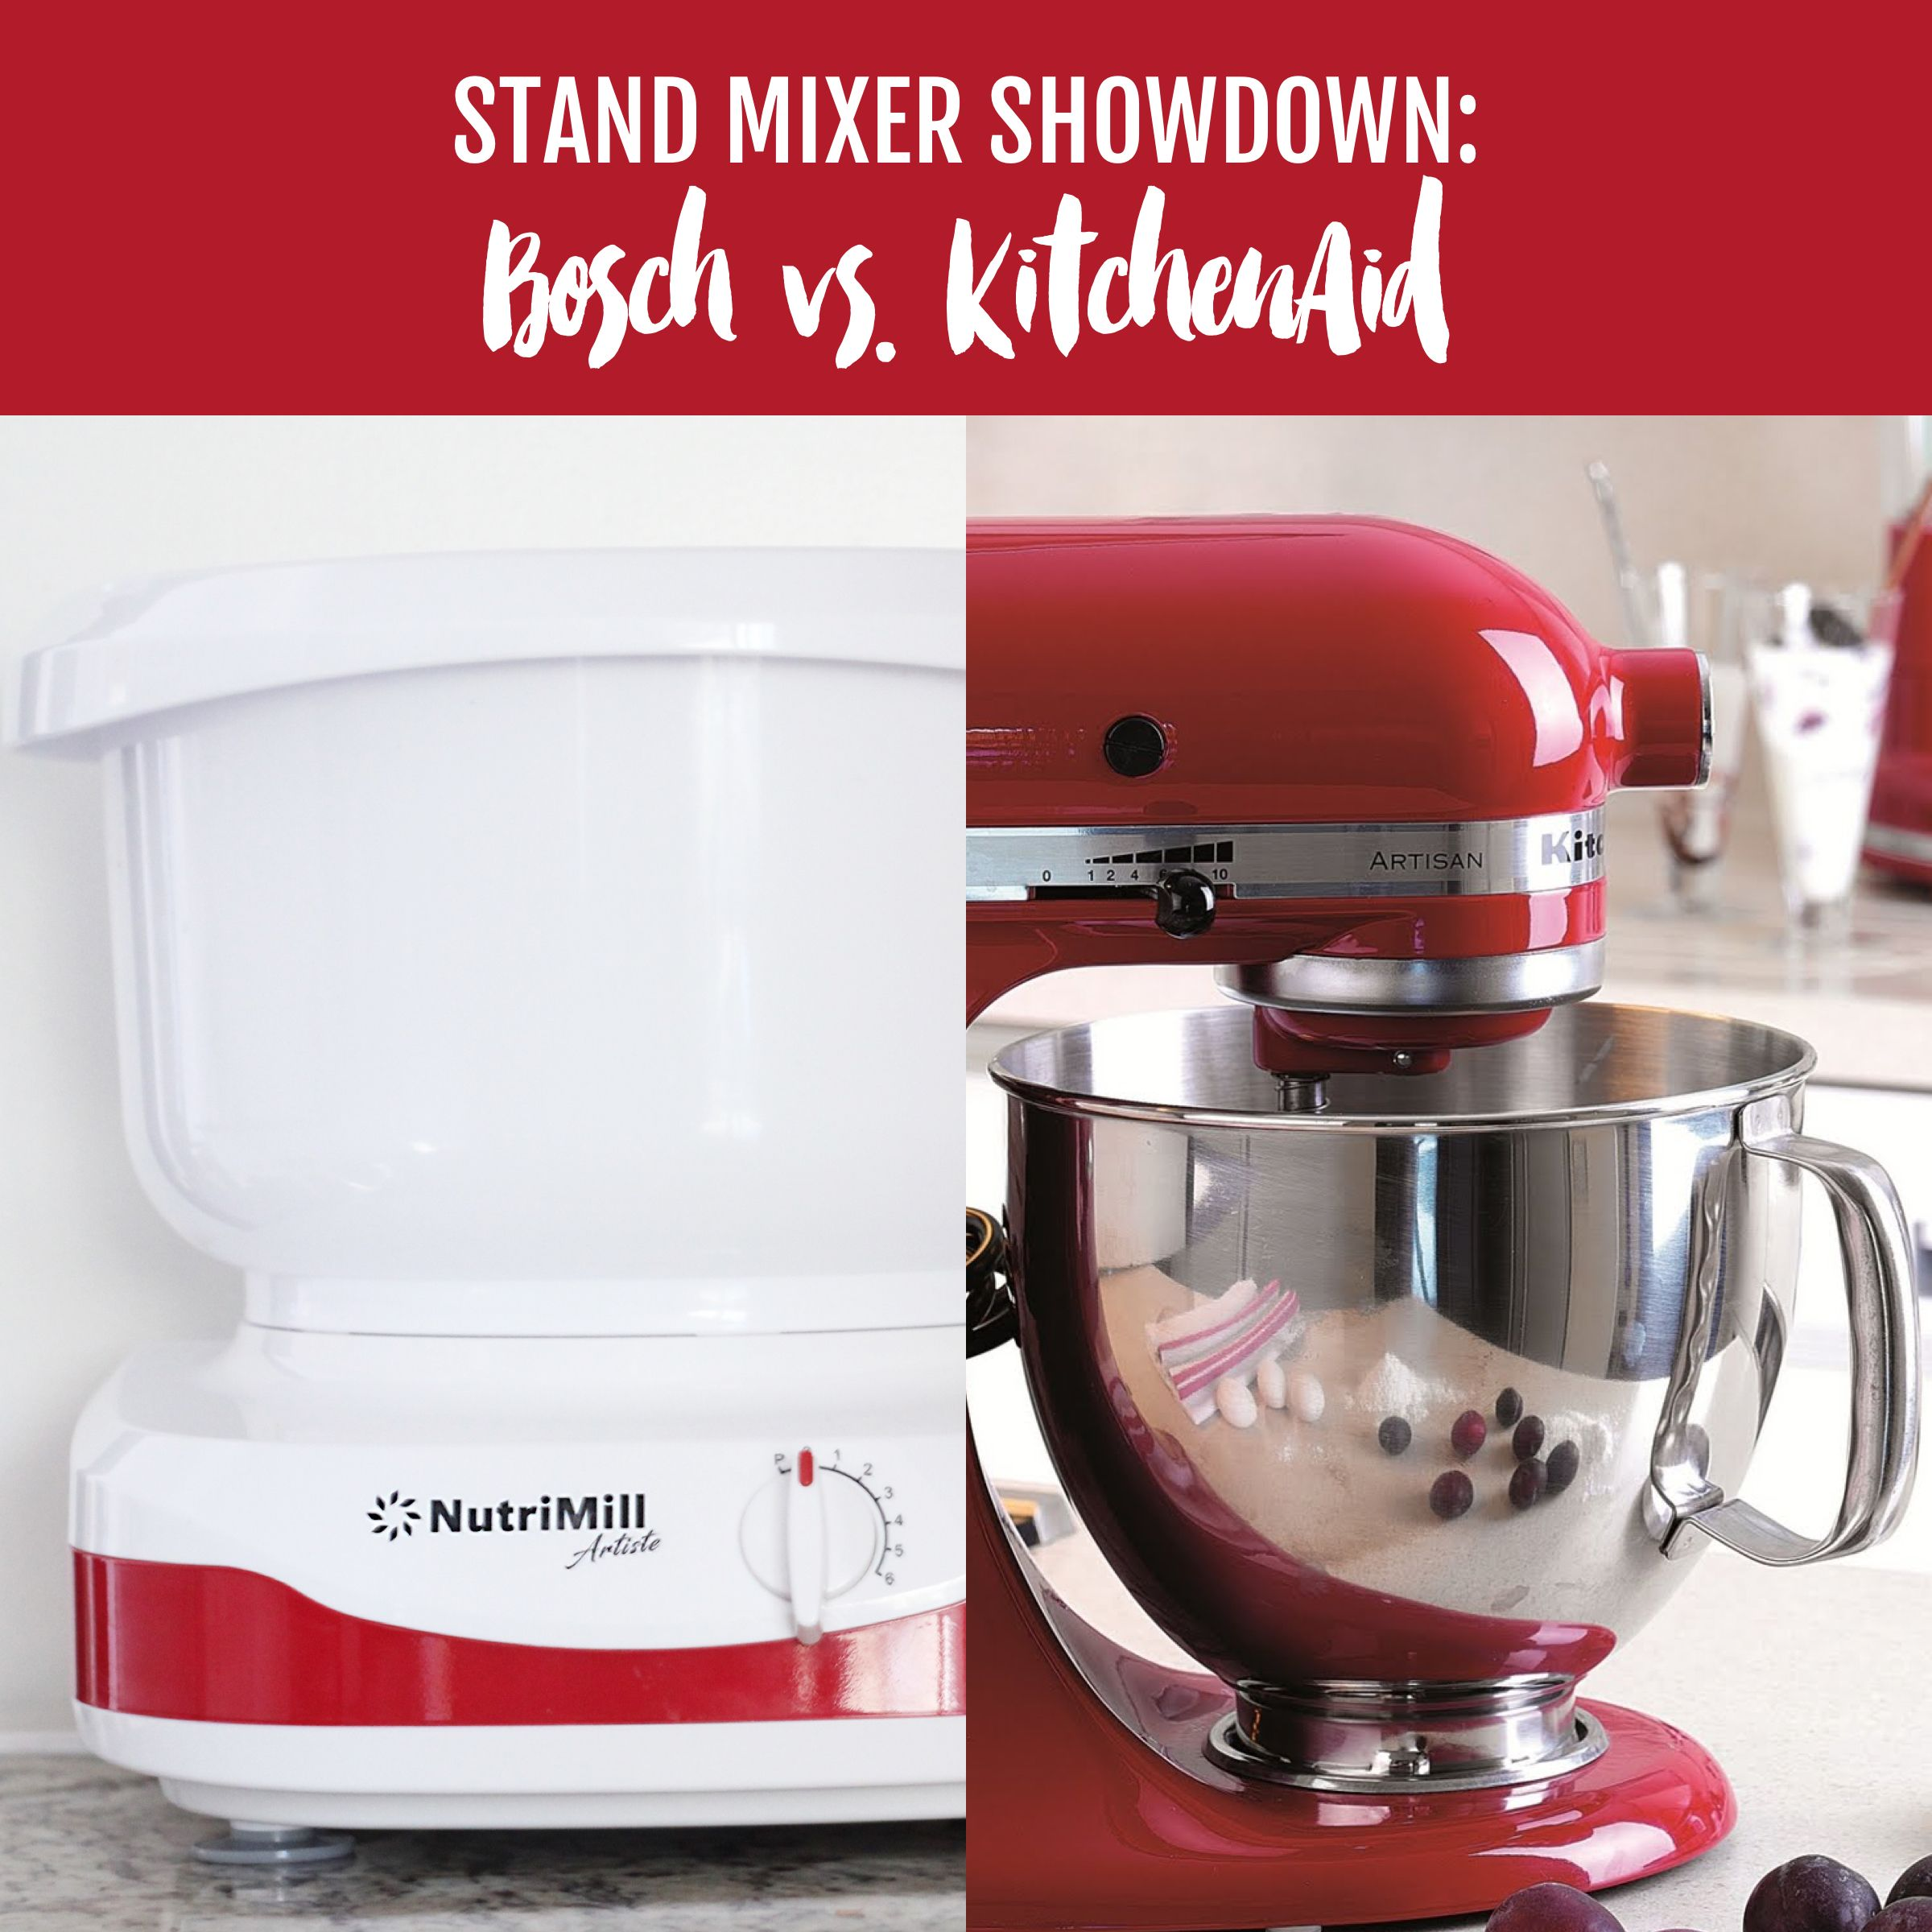 Bosch NutriMill Mixer Versus KitchenAid   Which Is The Better Mixer?